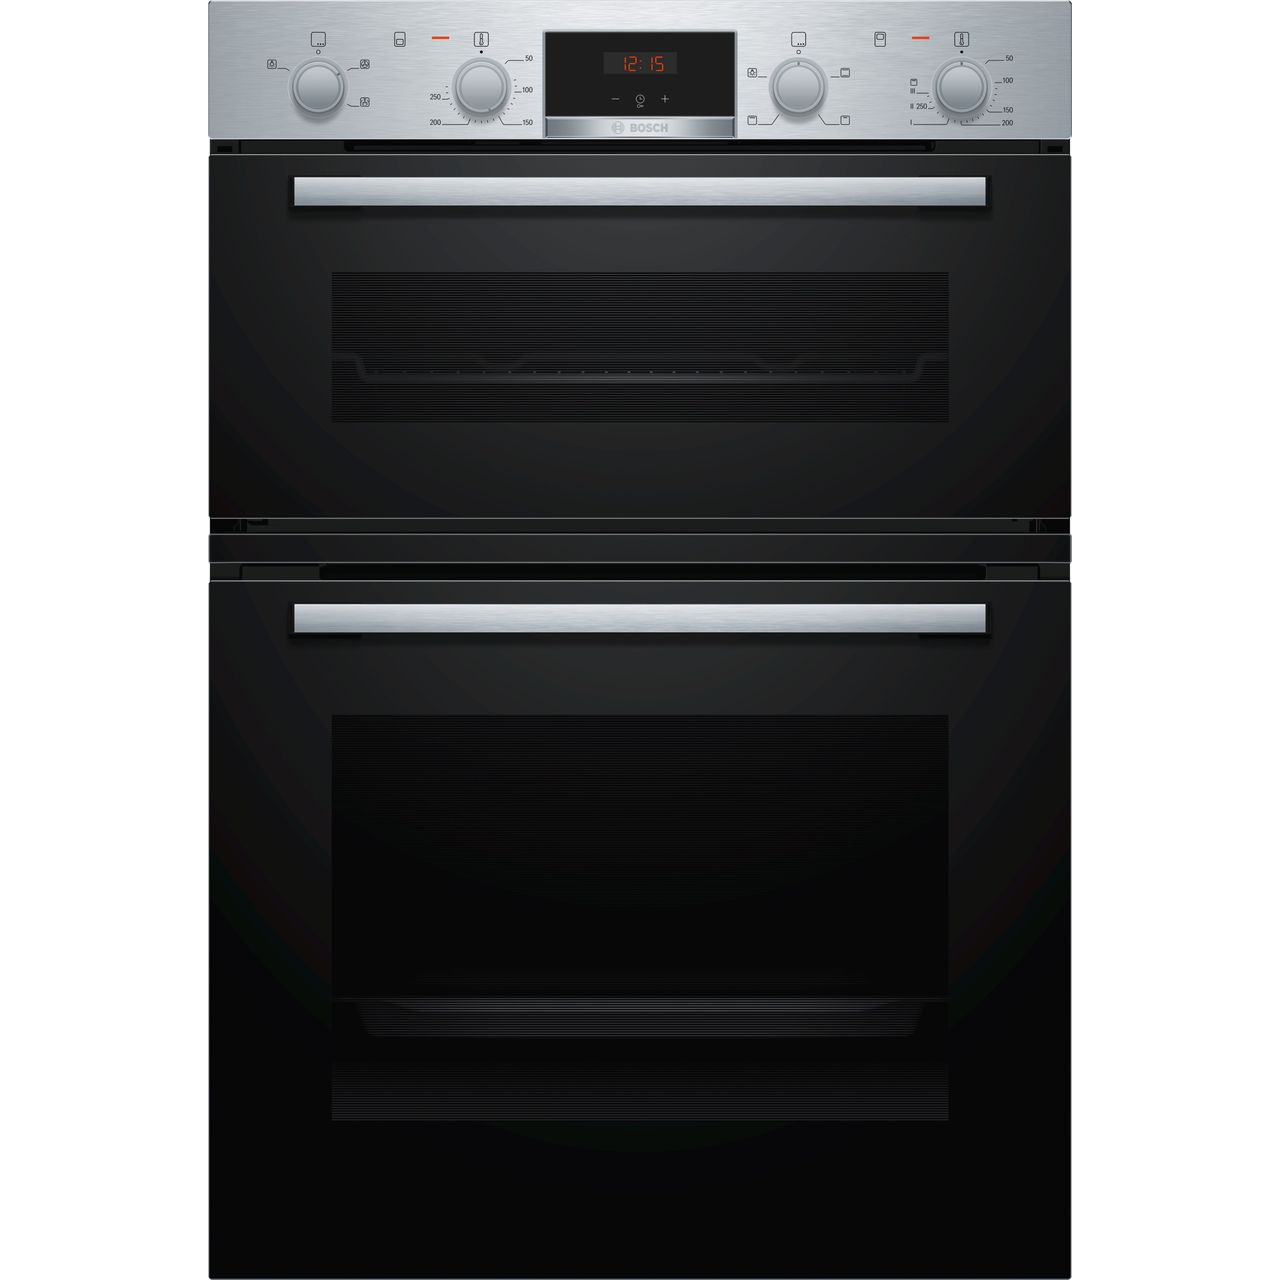 Bosch Serie 2 Built In Electric Double Oven - Stainless Steel - A/B Rated